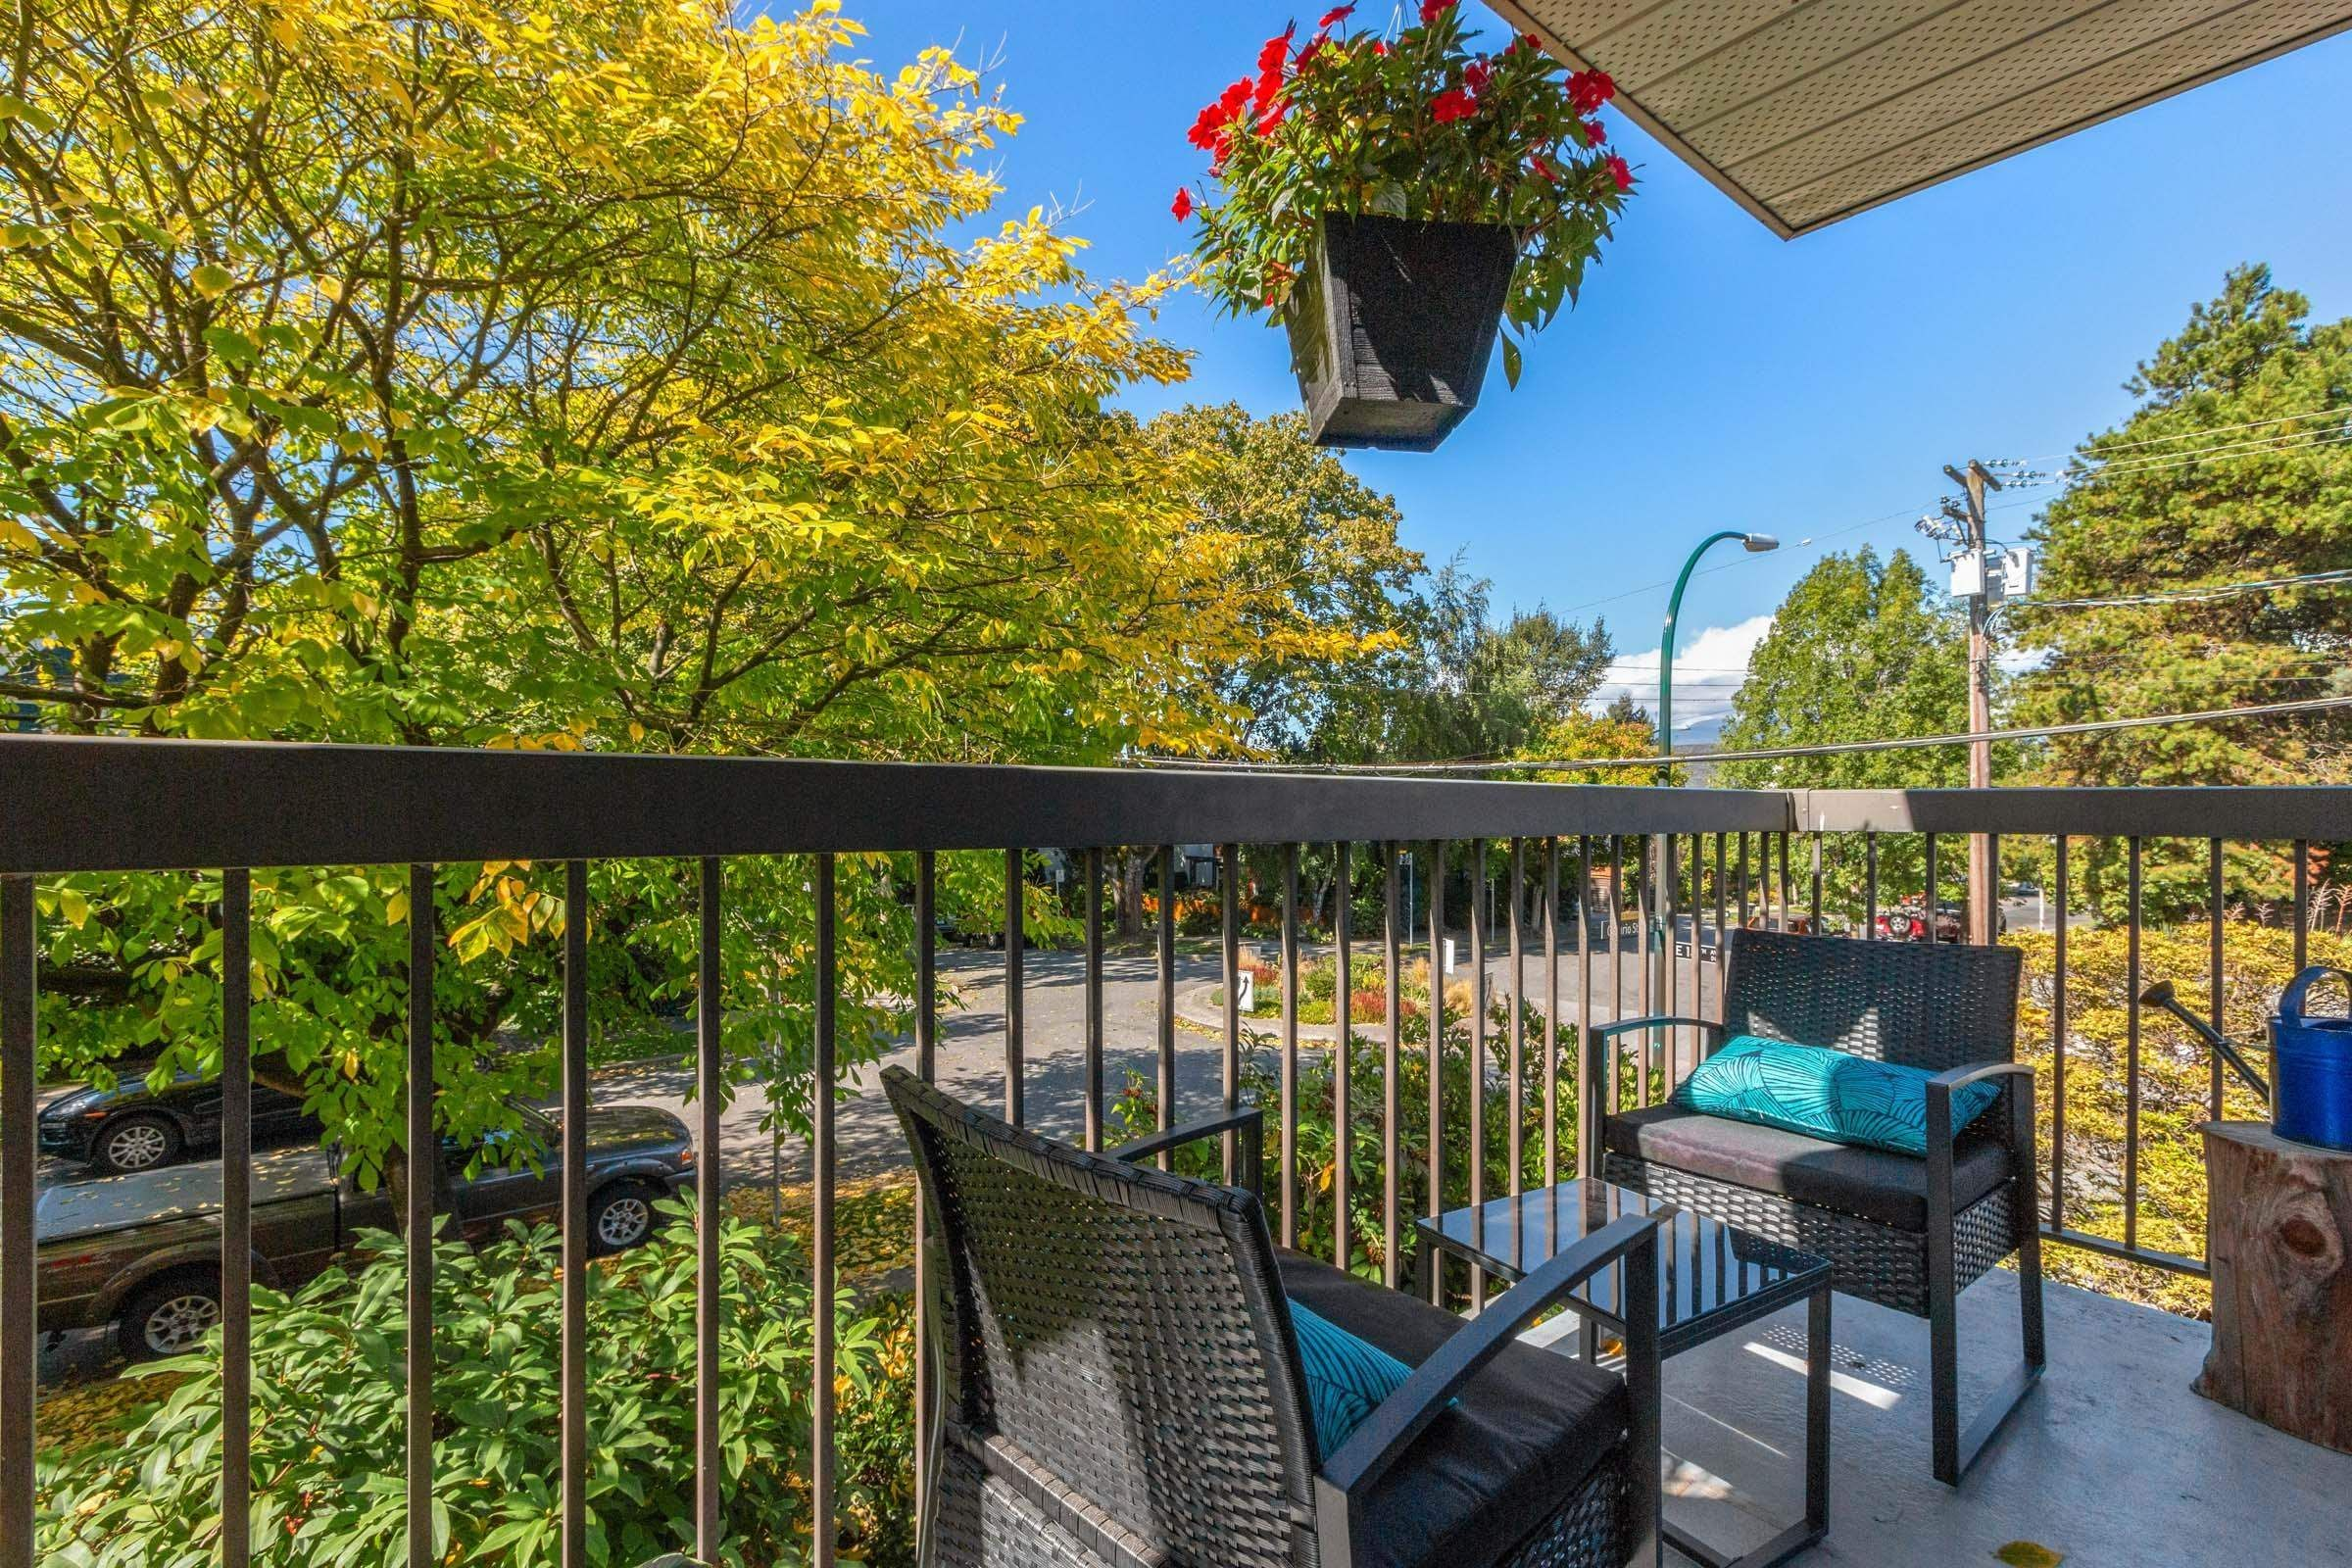 """Main Photo: 203 2910 ONTARIO Street in Vancouver: Mount Pleasant VE Condo for sale in """"ONTARIO PLACE"""" (Vancouver East)  : MLS®# R2618780"""